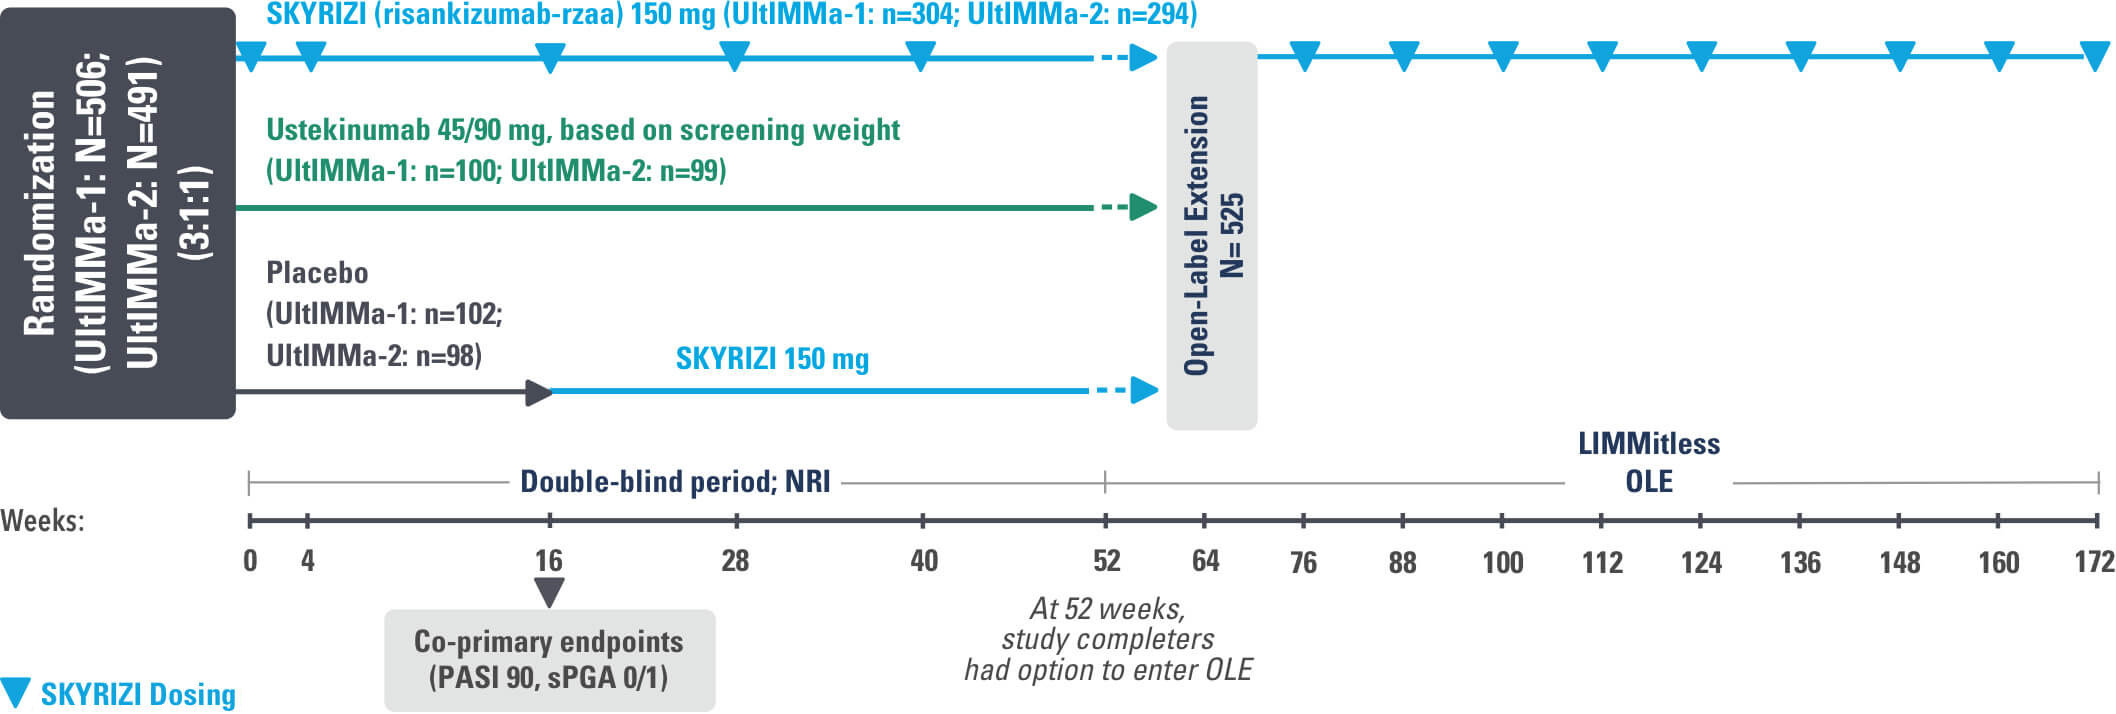 SKYRIZI® Study Design for UltIMMa-1 and UltIMMa-2 with LIMMitless